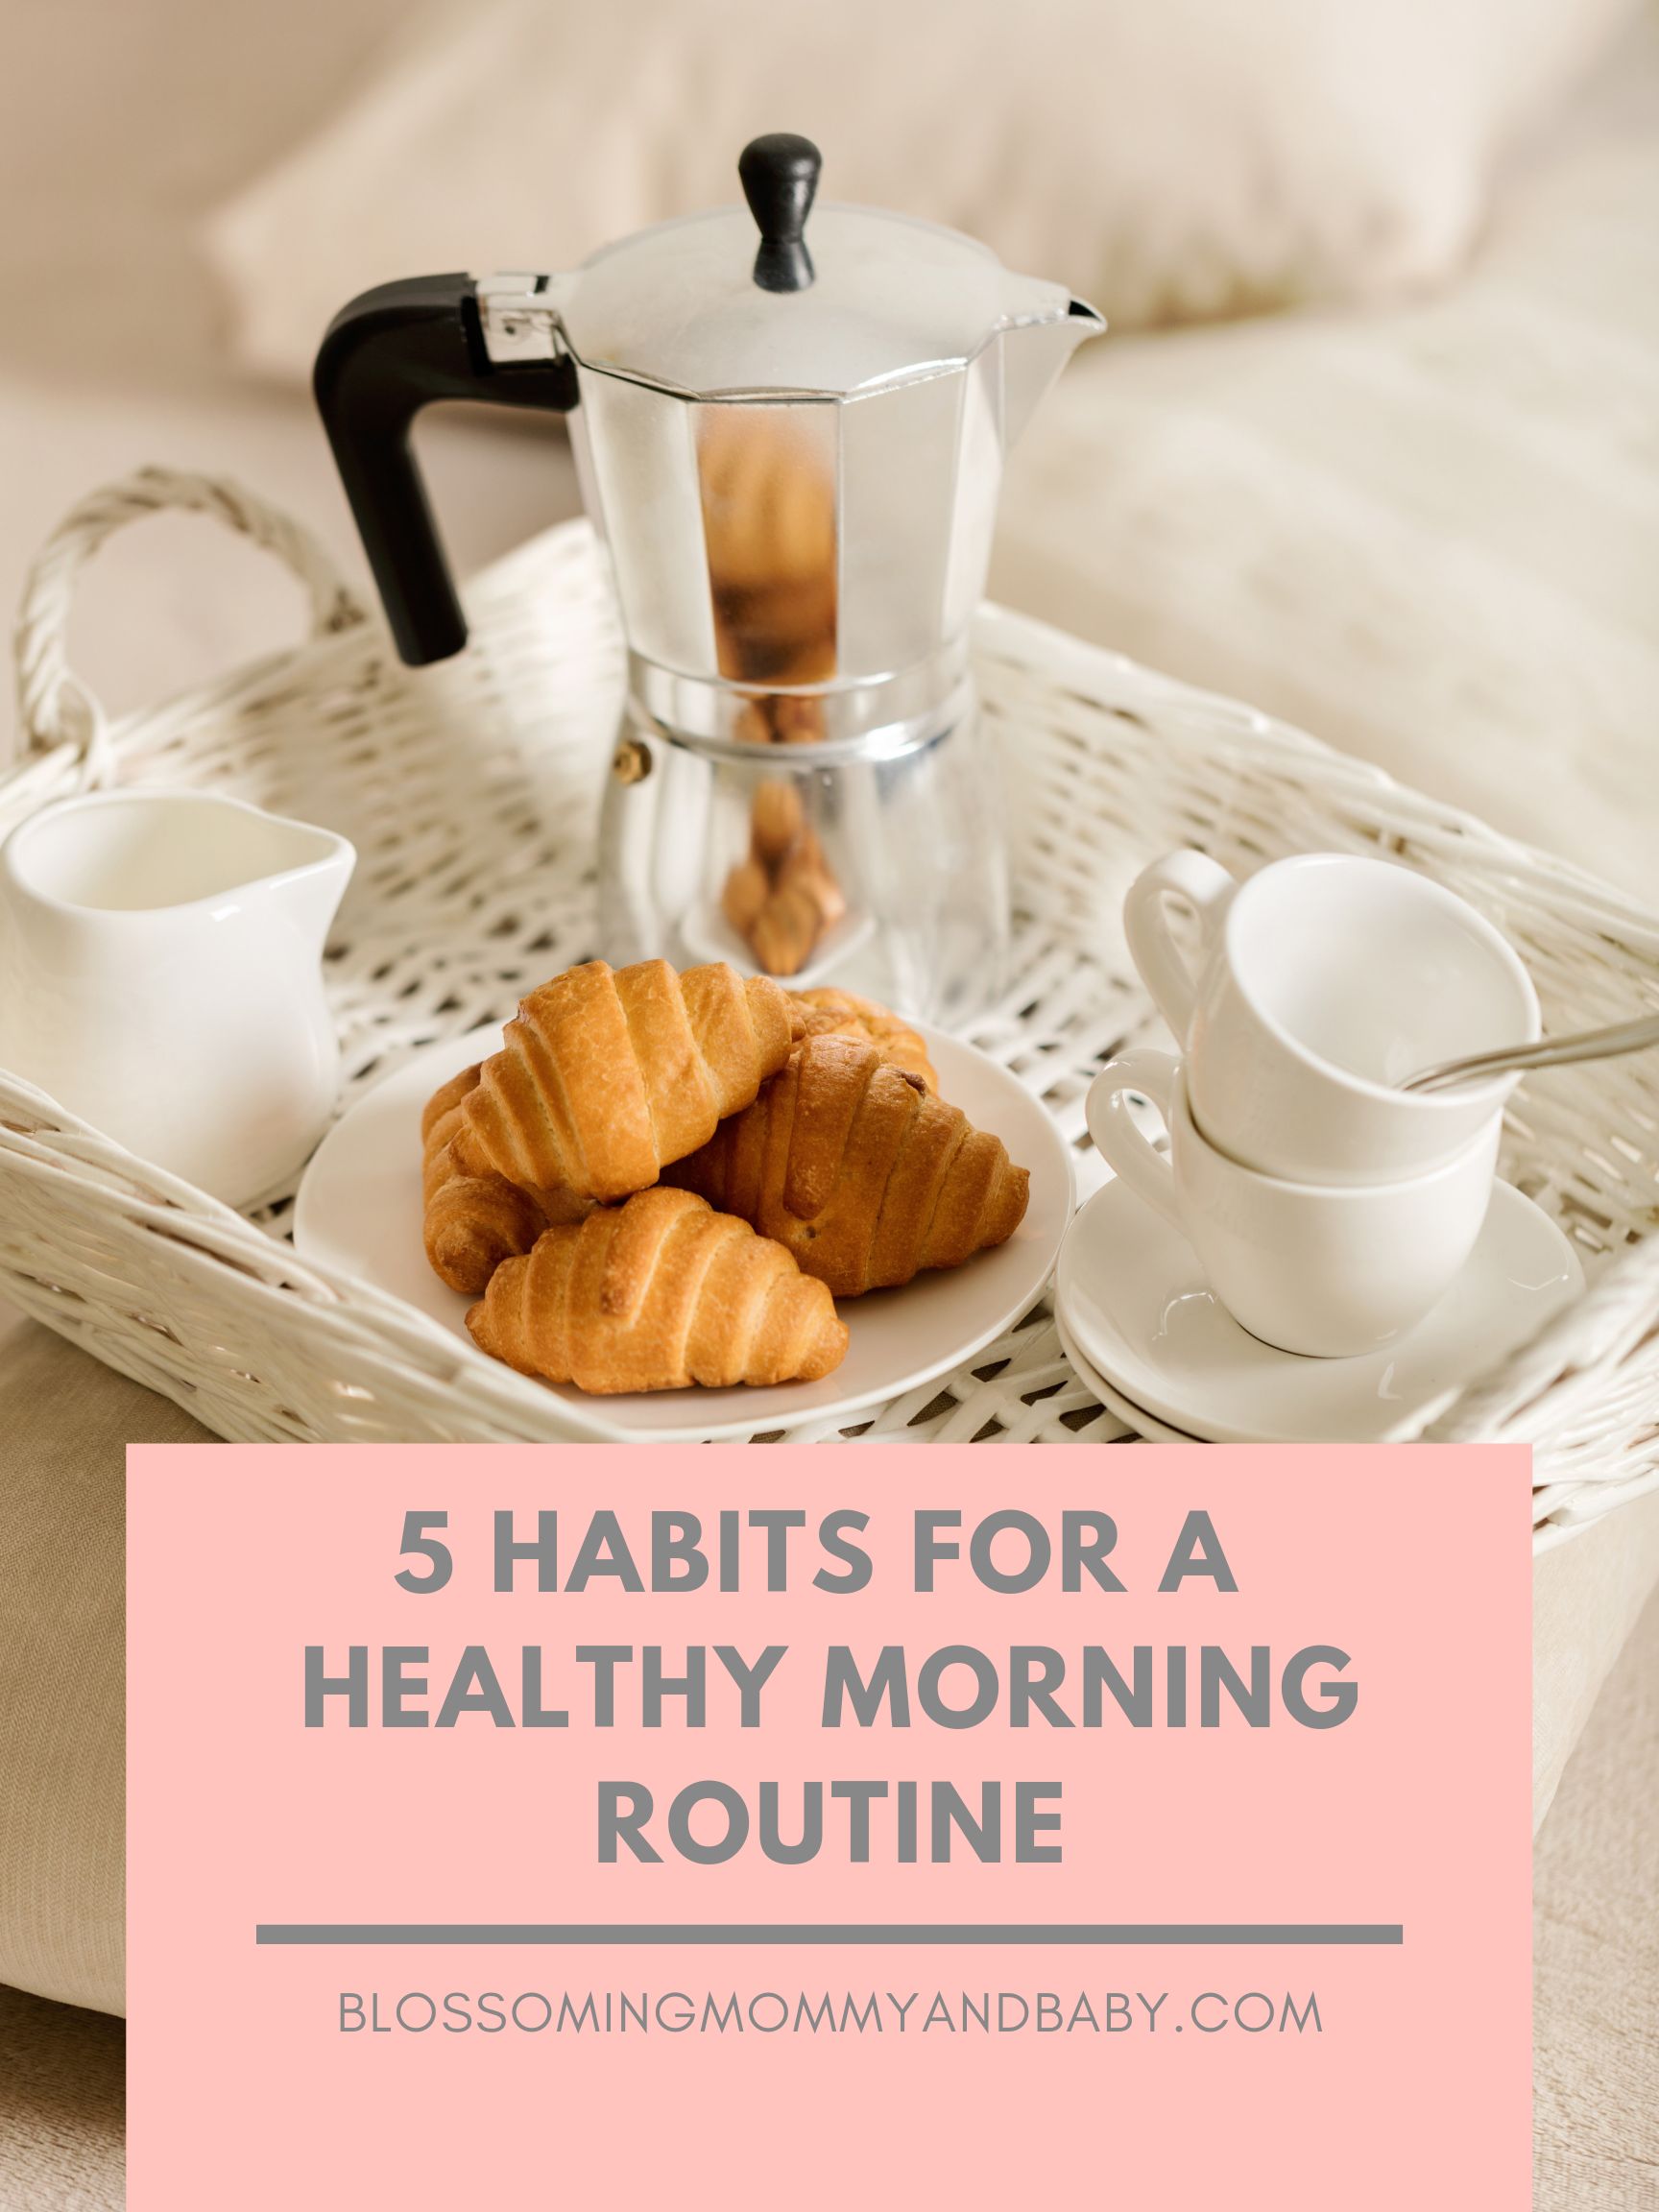 5 Habits for a healthy morning routine